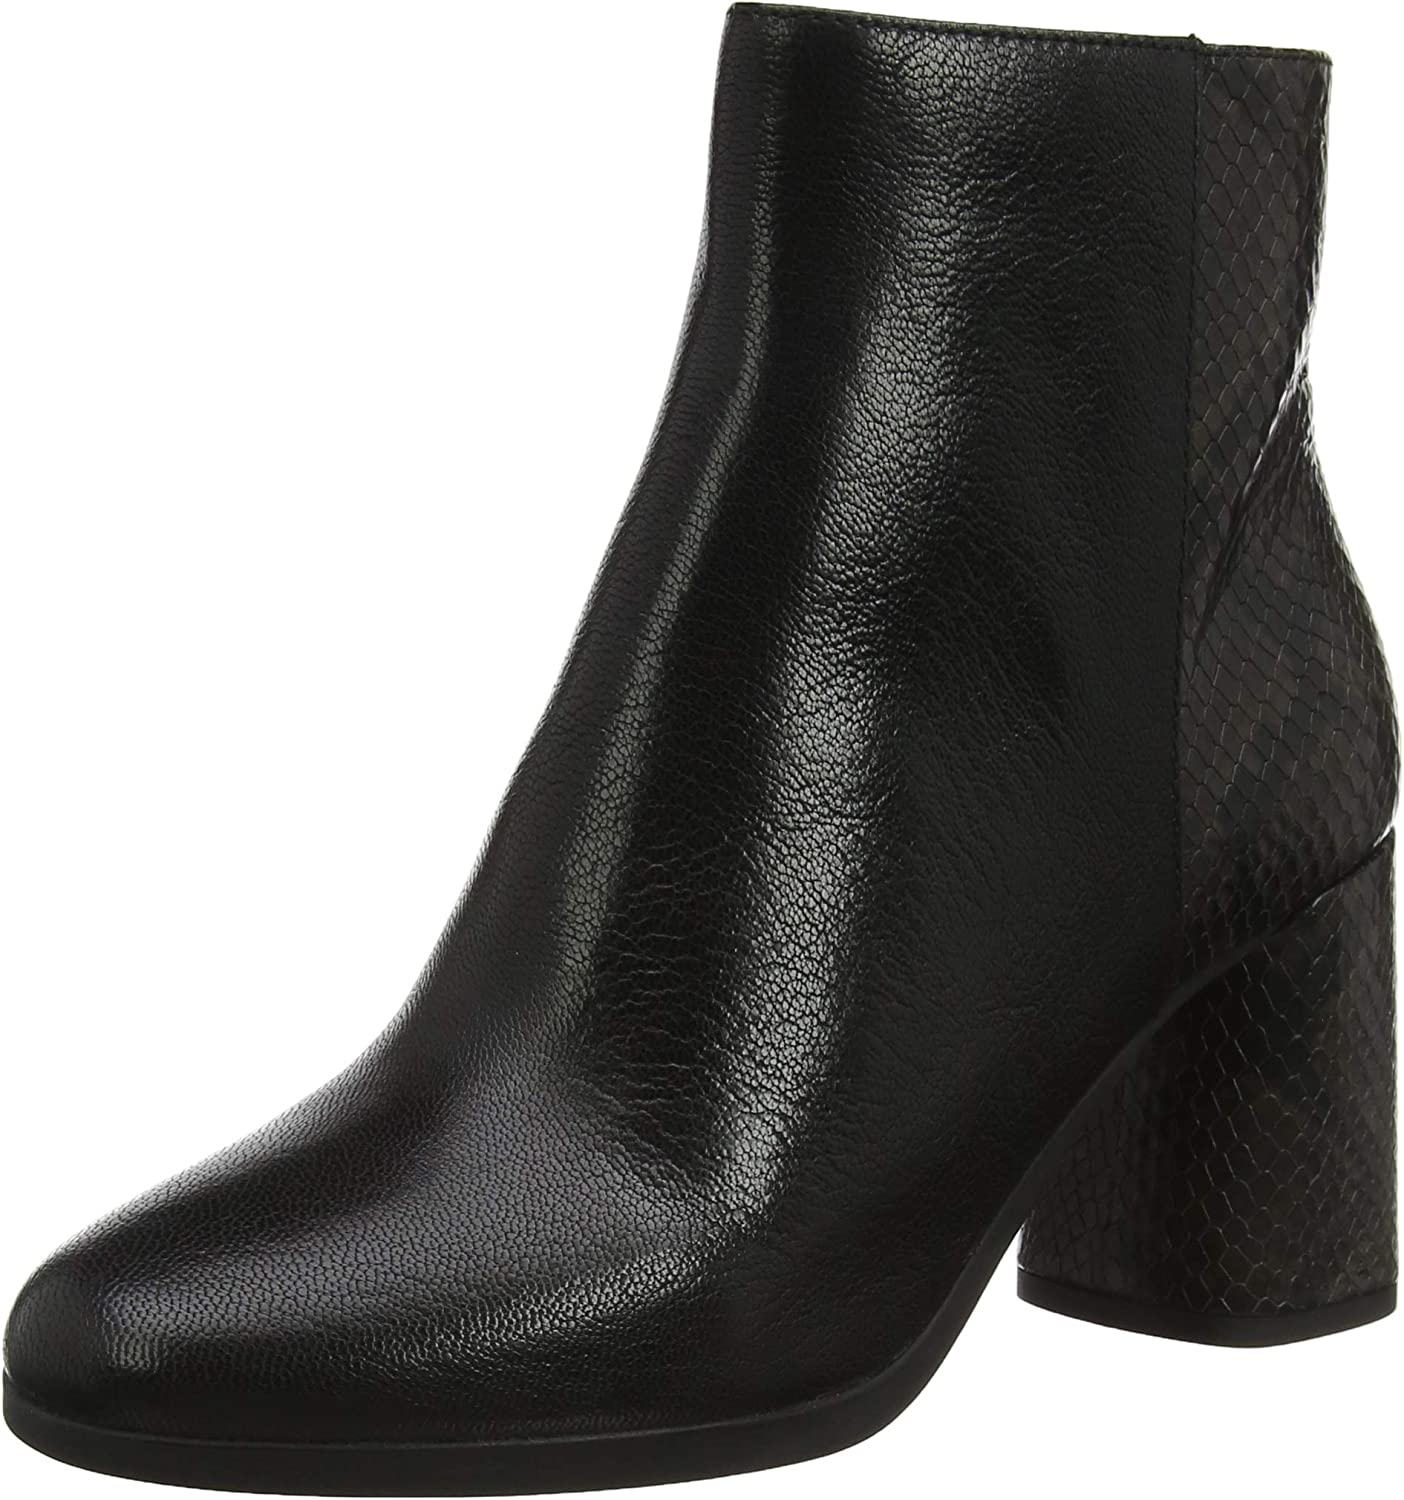 Geox Women's Ankle Columbus Mall Max 85% OFF Boots